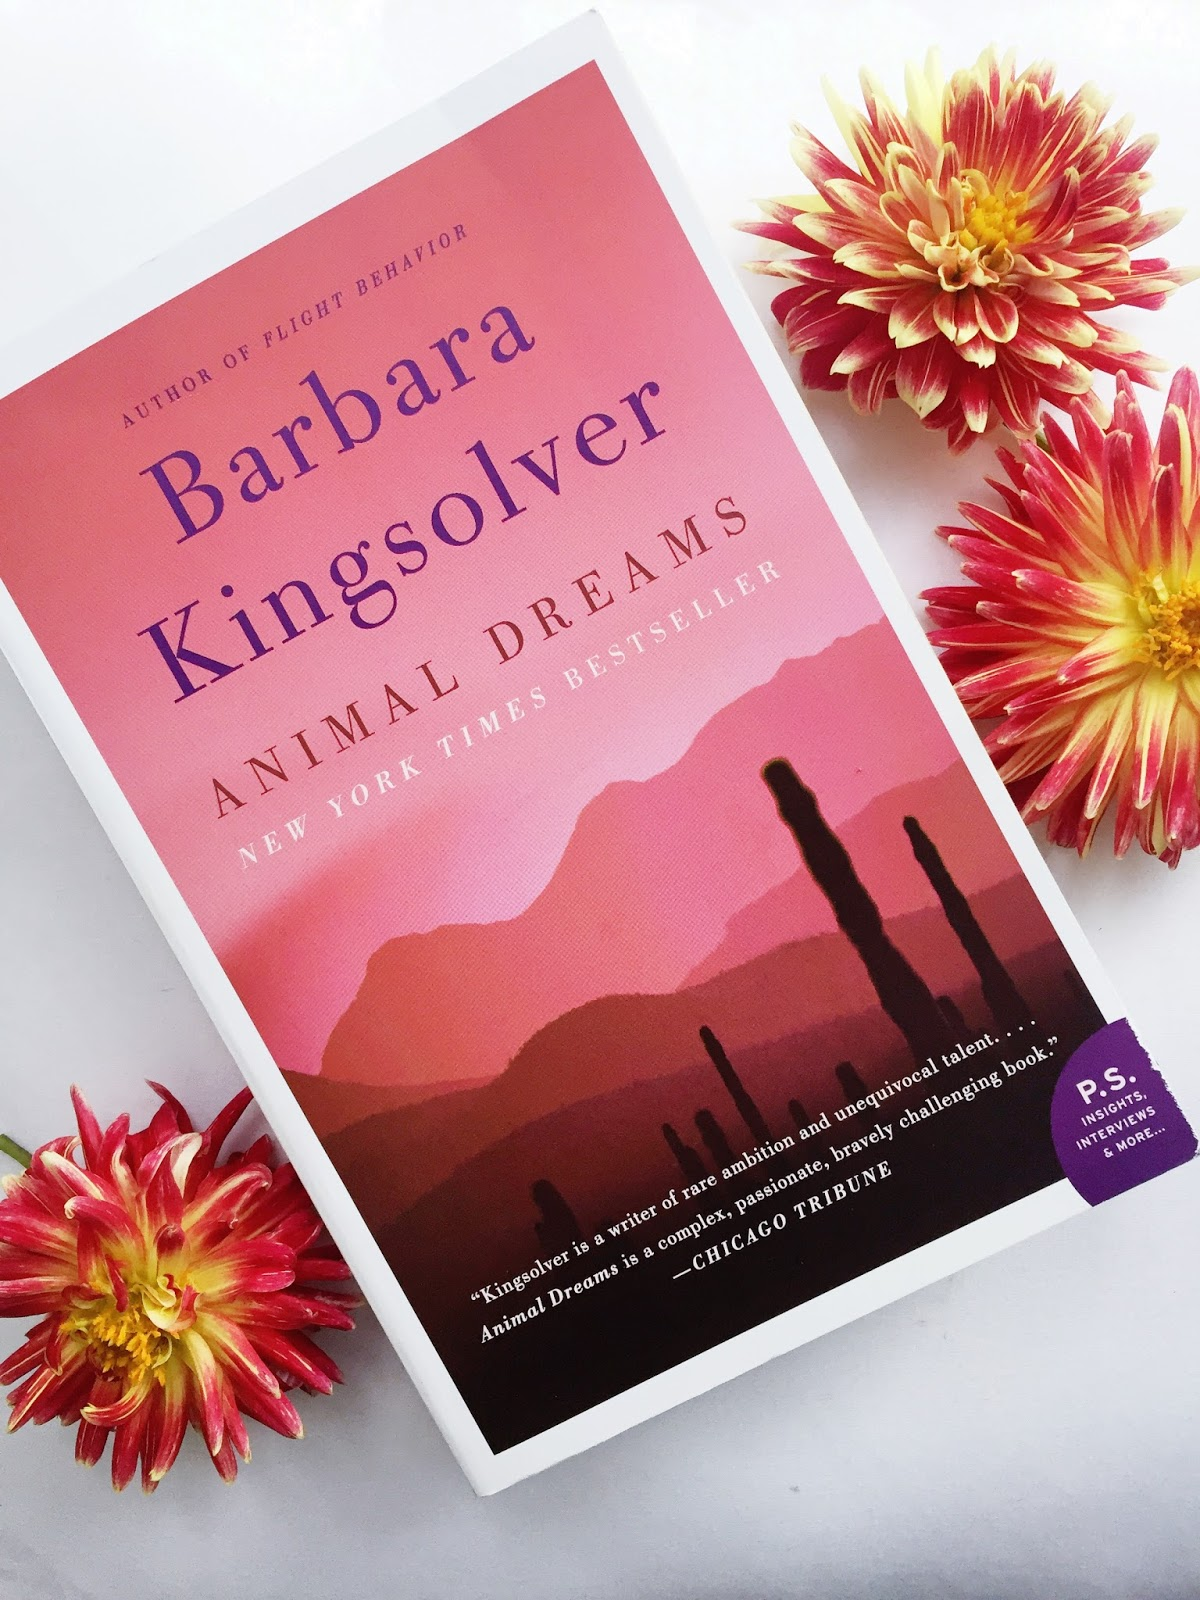 a literary analysis of animal dreams by barbara kingsolver Filled with lyrical writing, native american legends, a tender love story, and codi's quest for identity, animal dreams is literary fiction at it's very best this edition includes a ps section with additional insights from barbara kingsolver, background material, suggestions for further reading, and more.